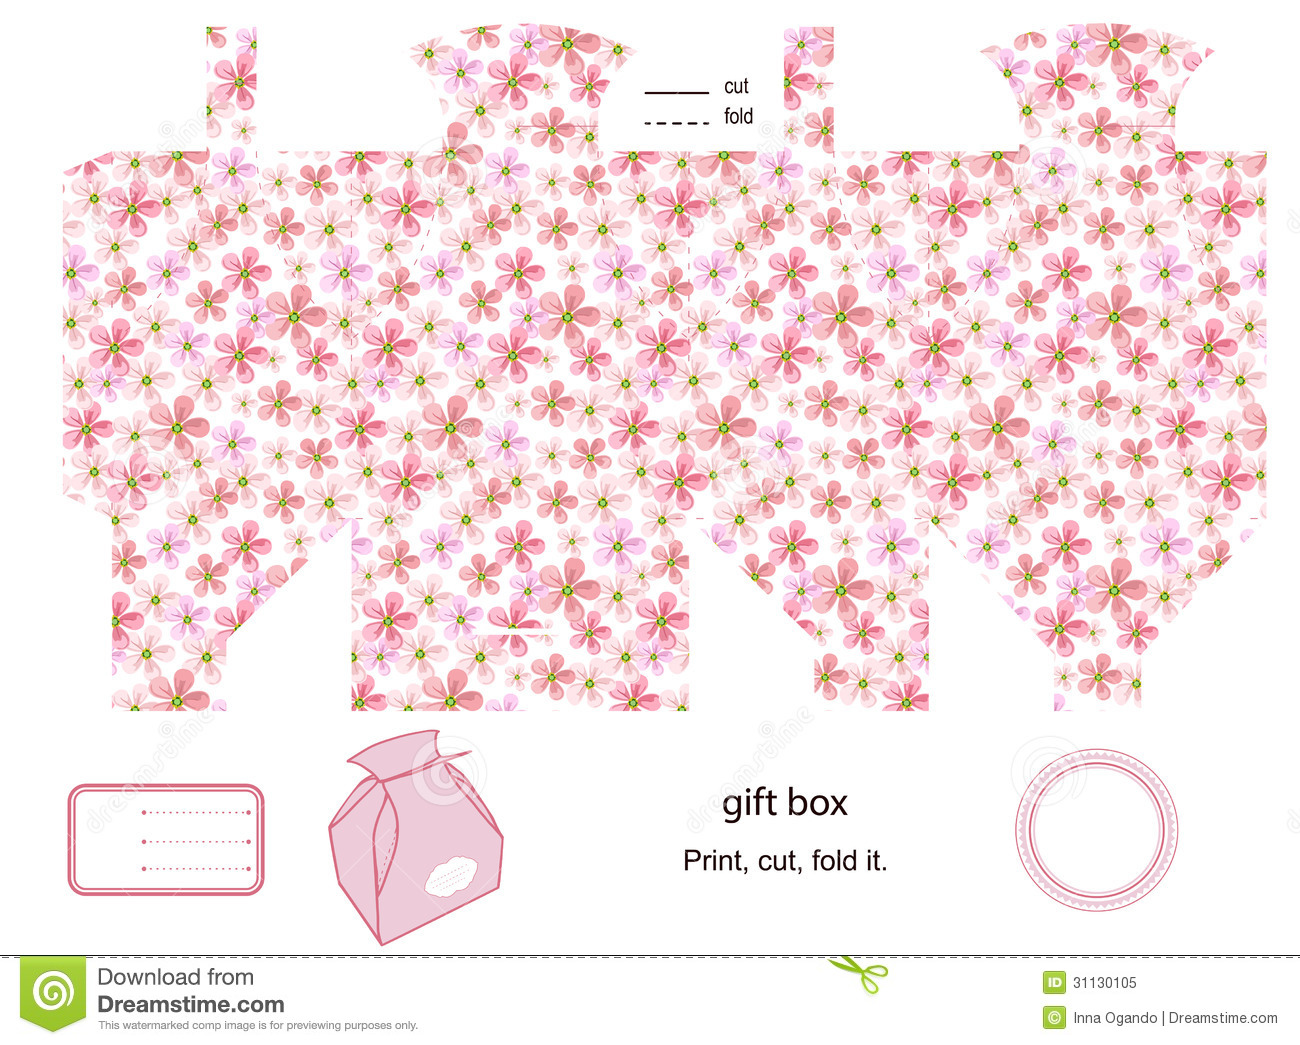 Gift Box Template Royalty Free Stock Photo - Image: 31130105